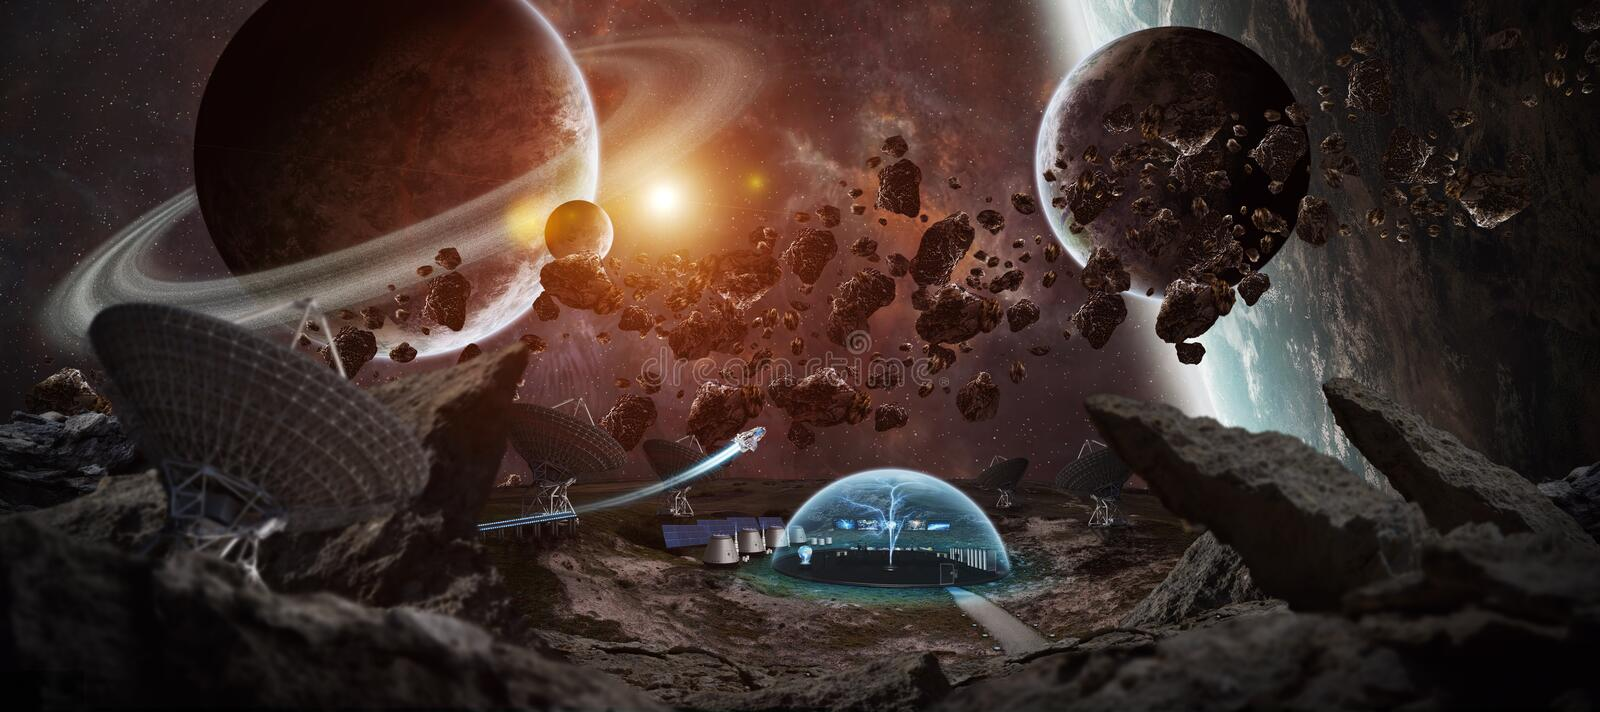 Observatory station in space 3D rendering elements of this image. Observatory station in space on an asteroid with dome protection and radio telescope 3D royalty free illustration